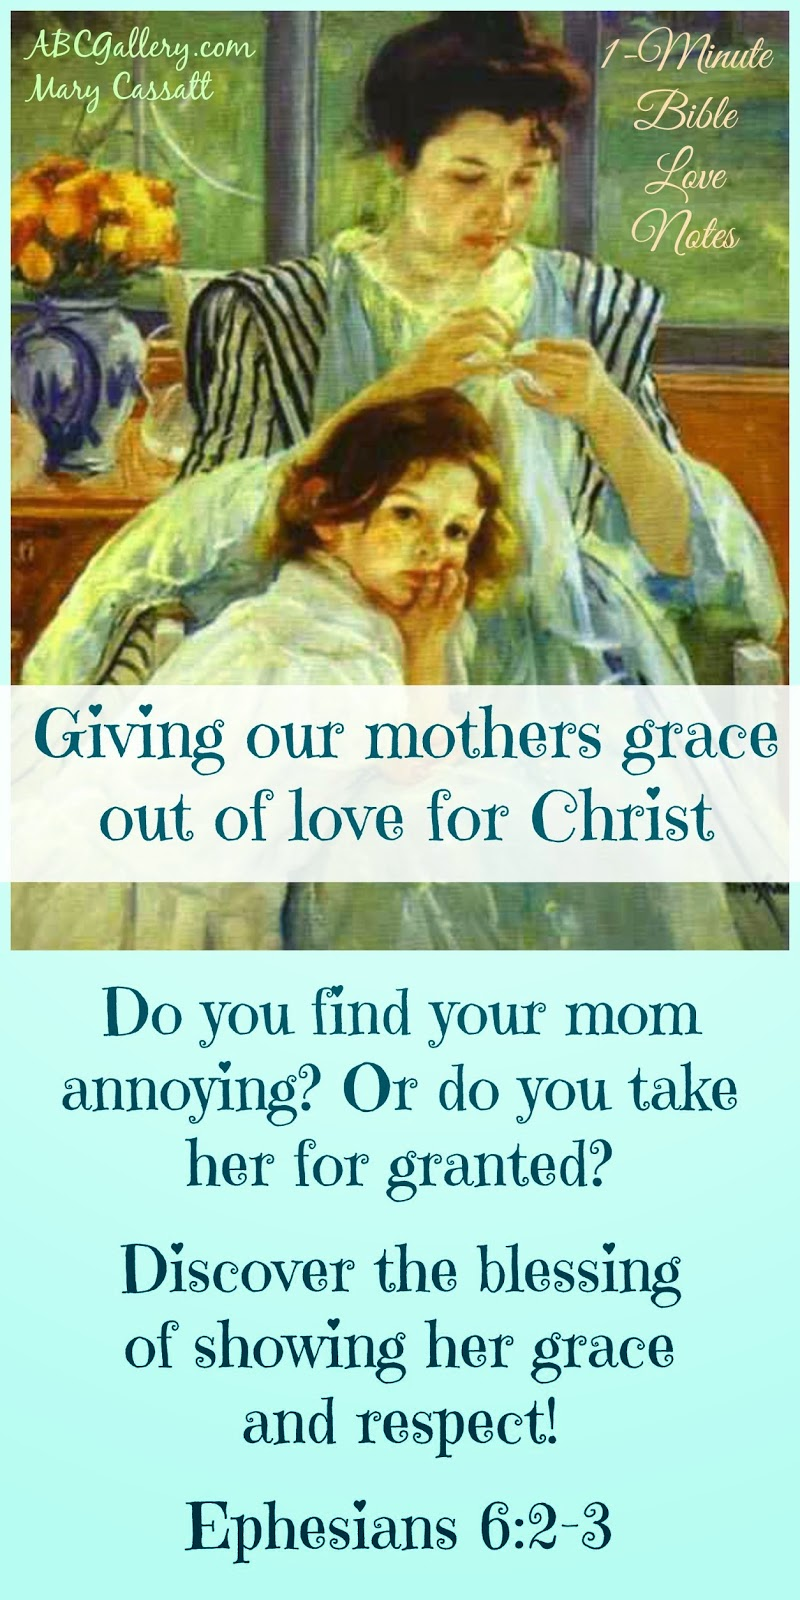 Having grace for our mothers, forgiving our mothers, honoring our mothers